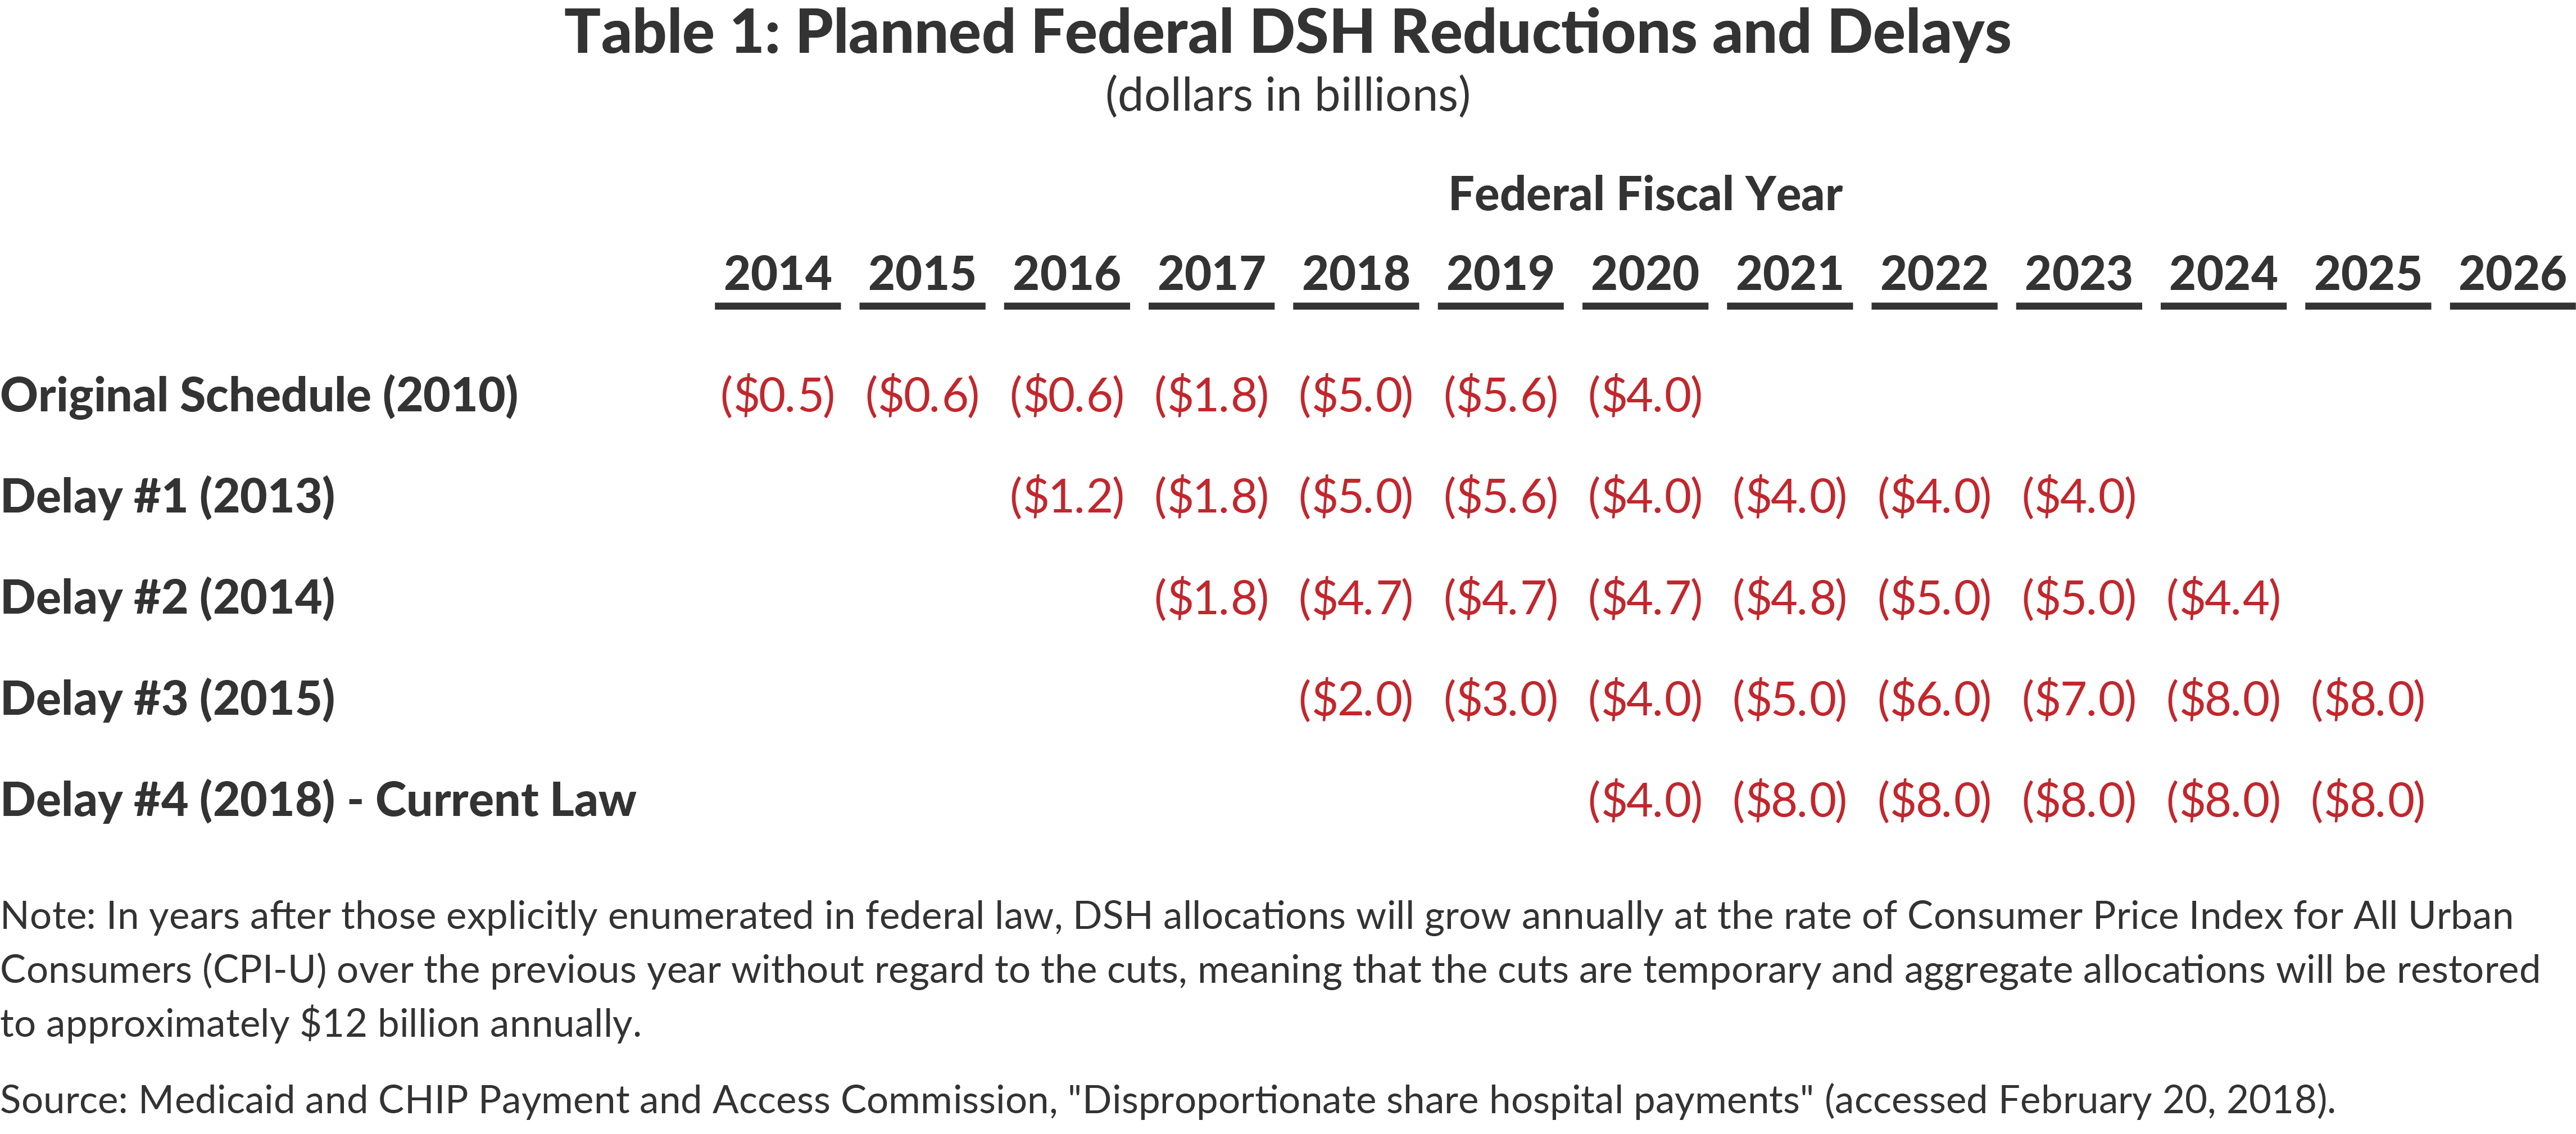 Table 1: Planned Federal DSH Reductions and Delays